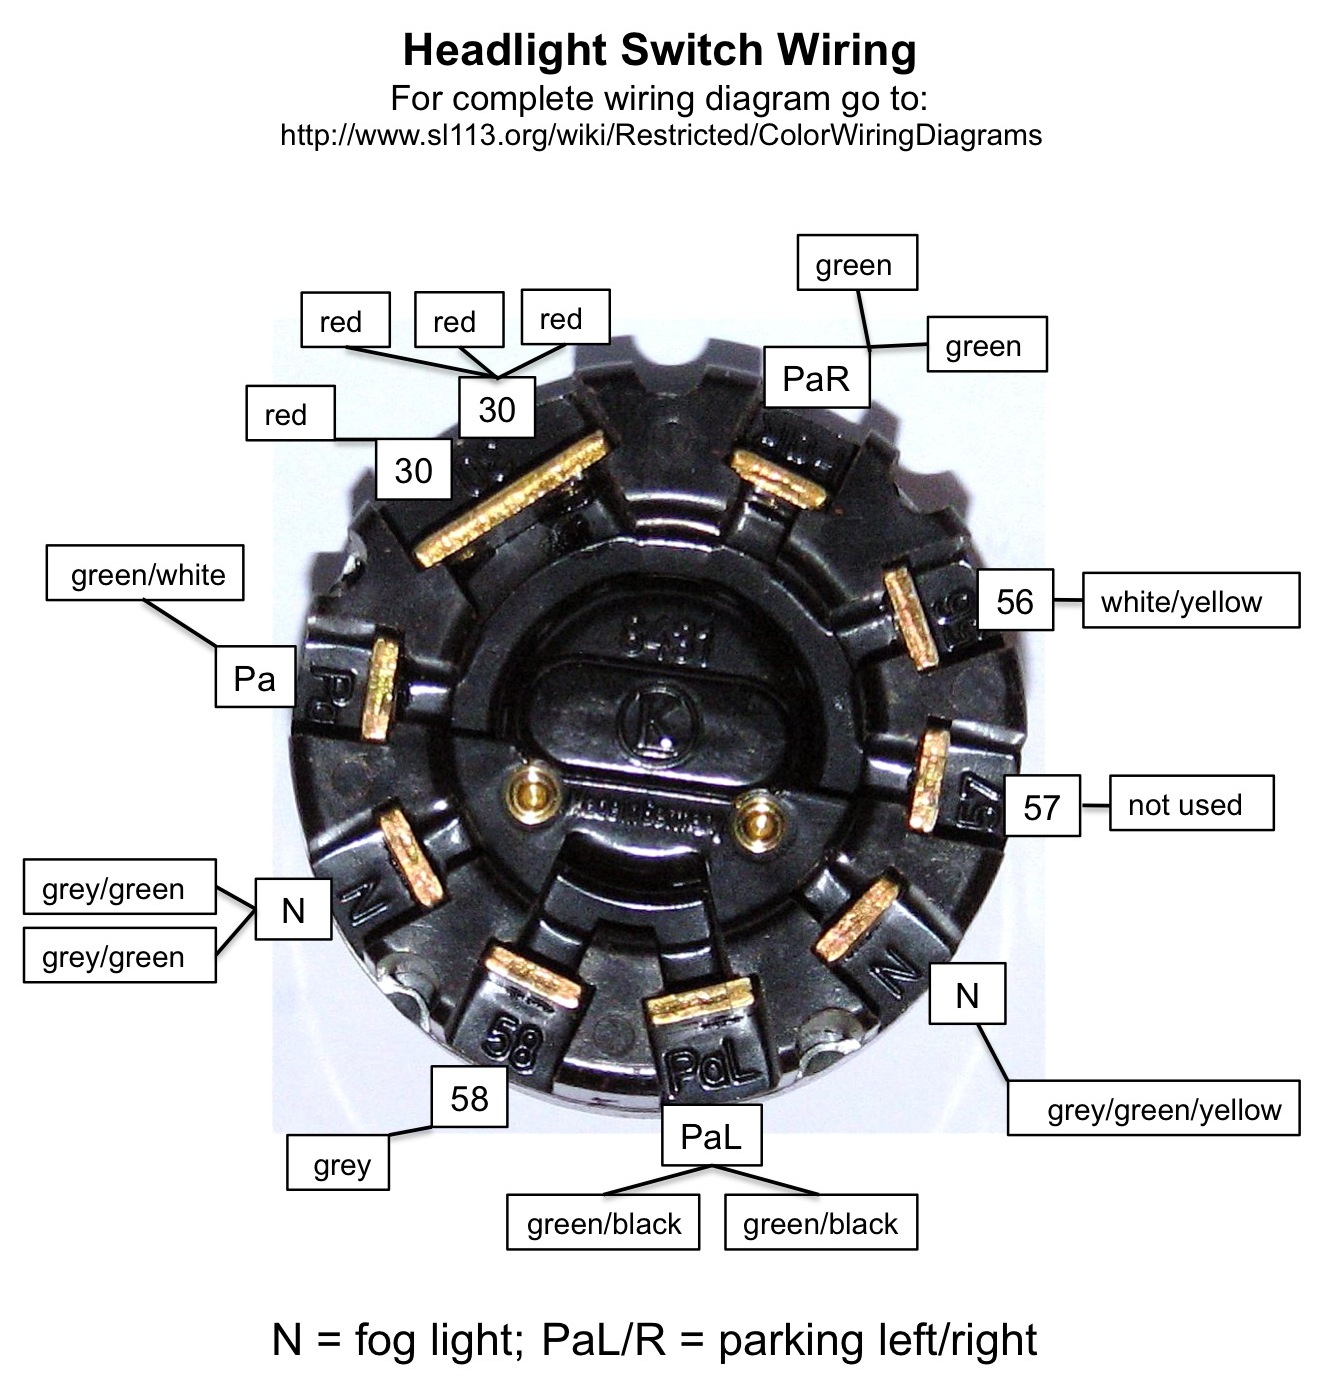 hight resolution of http www sl113 org wiki uploads electrical headlight switch wiring jpg